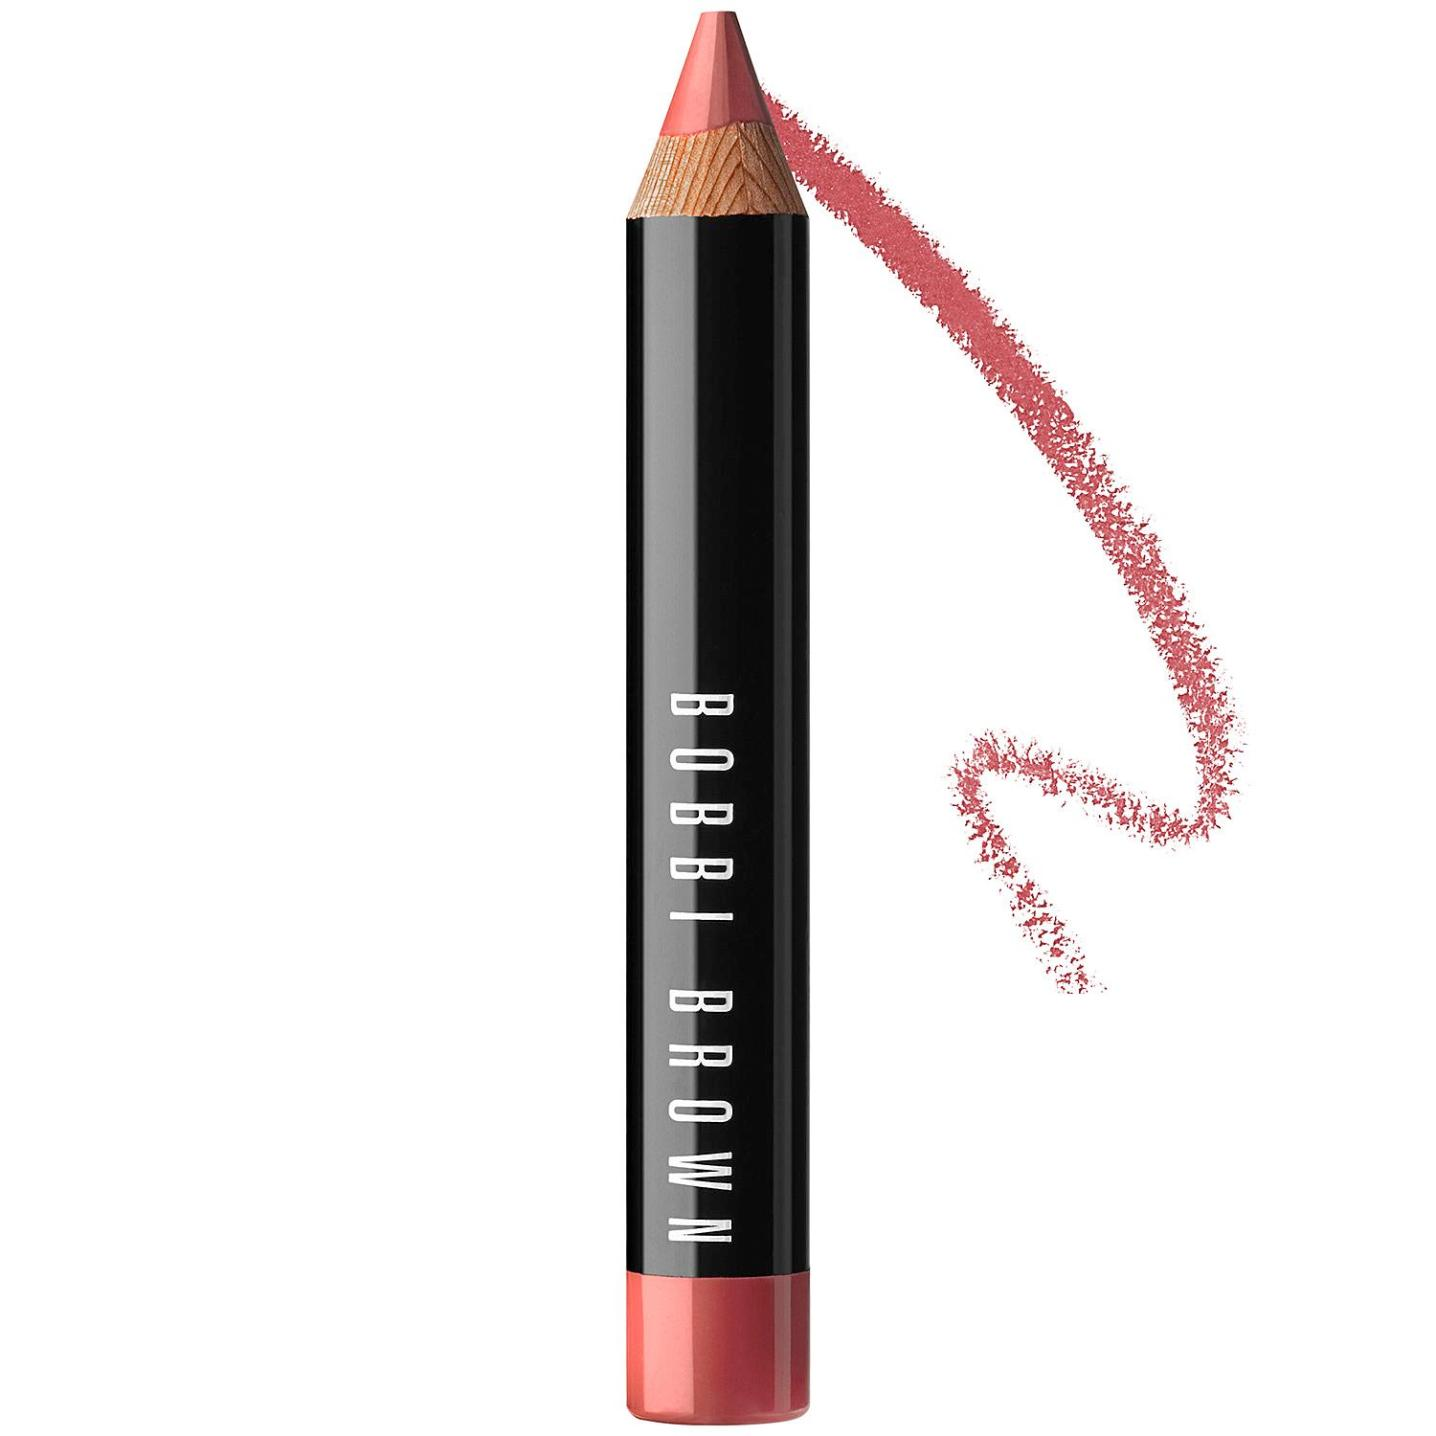 Bobbi Brown Art Stick Dusty Pink Lifestyleblog Wien Österreich www.viennafashionwaltz.com